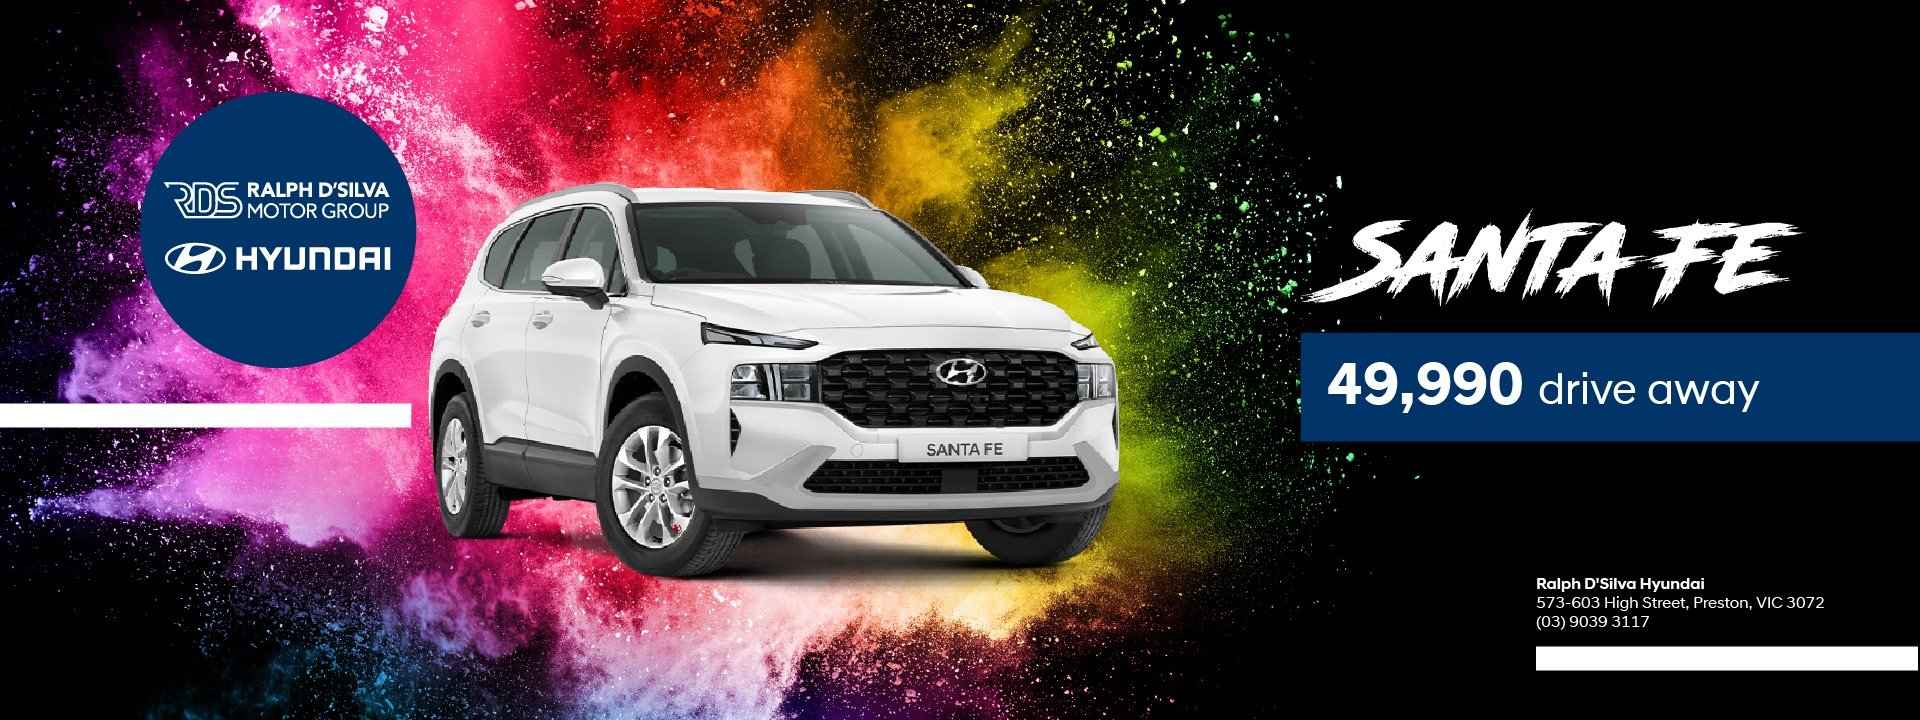 santafe @ only $49990 drive away